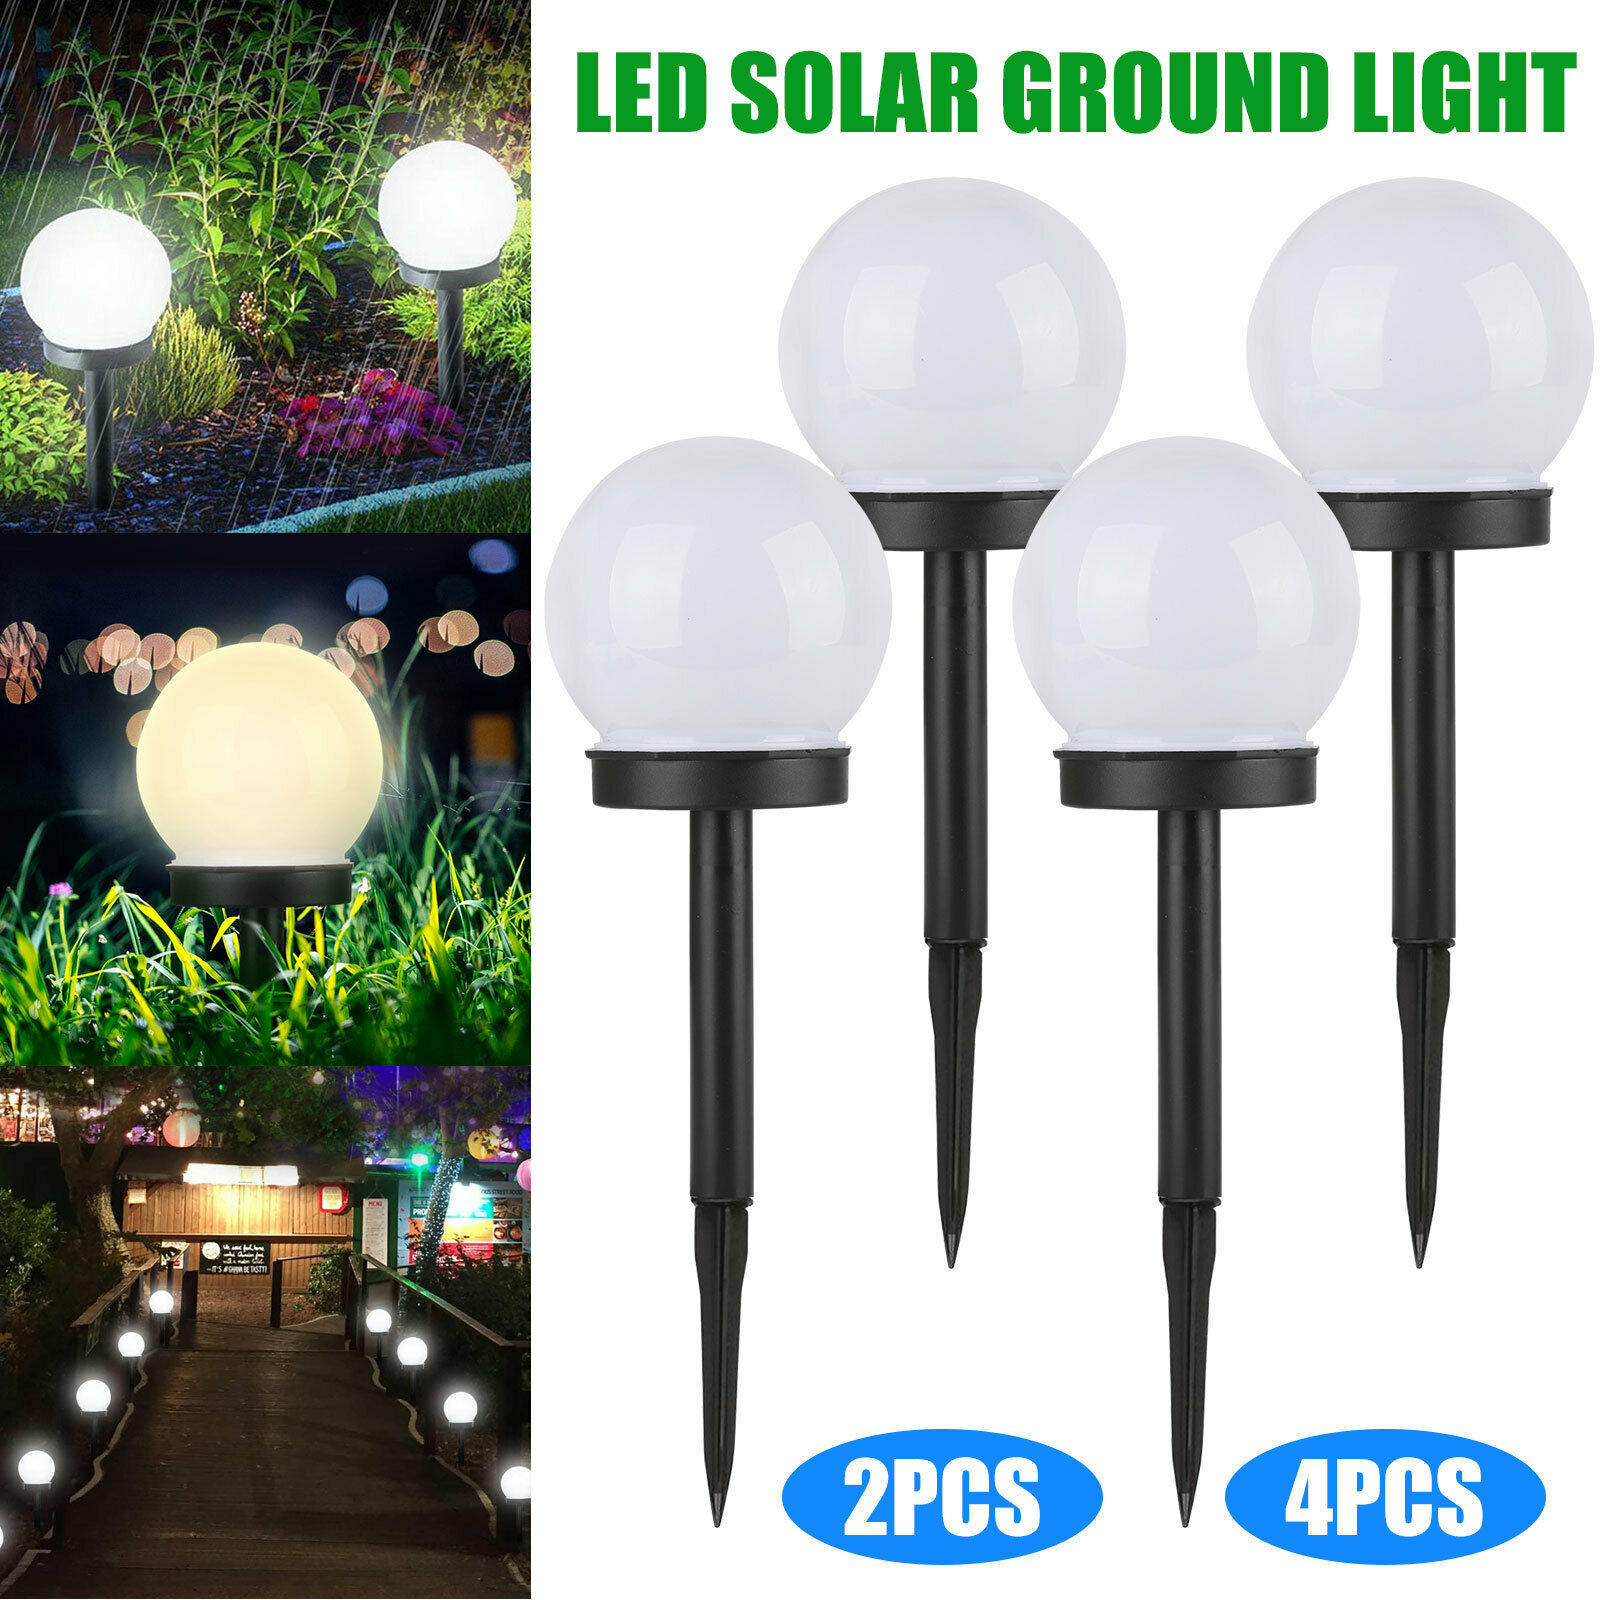 Water Pond Floating Lights Set 2 Aquatic Globe Waterproof White Clear Solar Ball For Sale Online Ebay